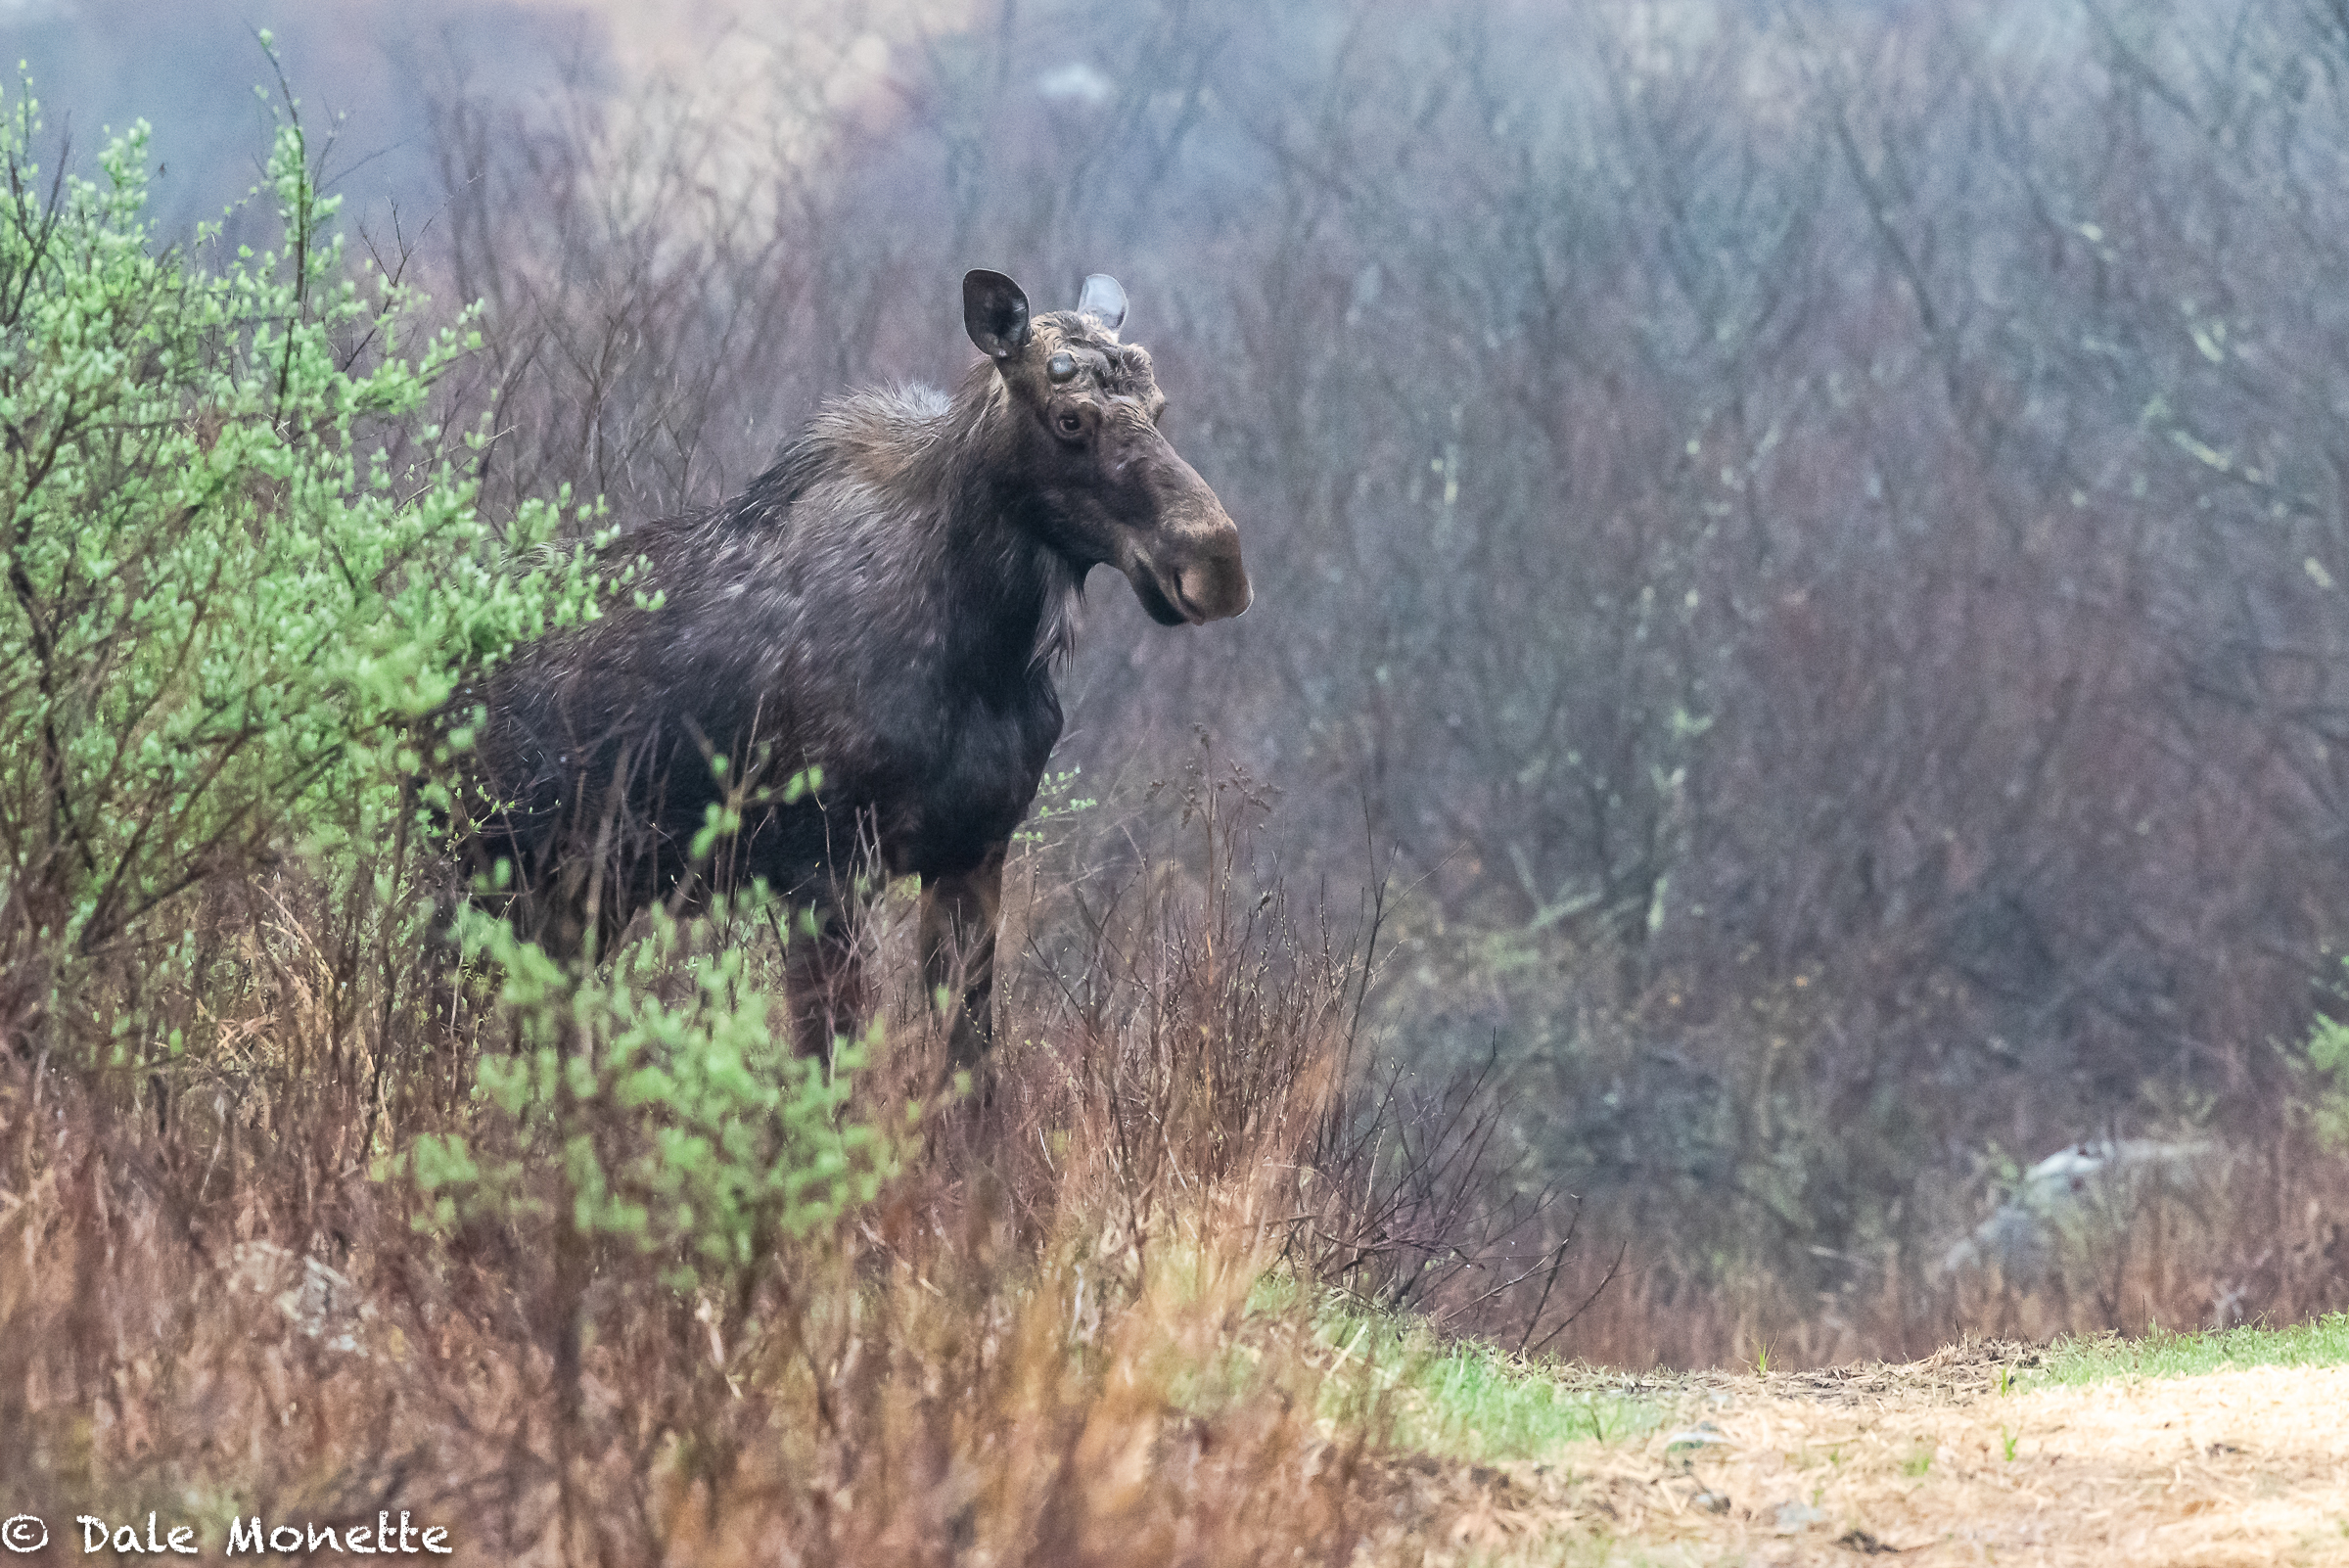 You can see from this image that this is a bull moose. He is just starting to grow his antlers for the fall mating season. Some moose can grow antlers up to 35 pounds !